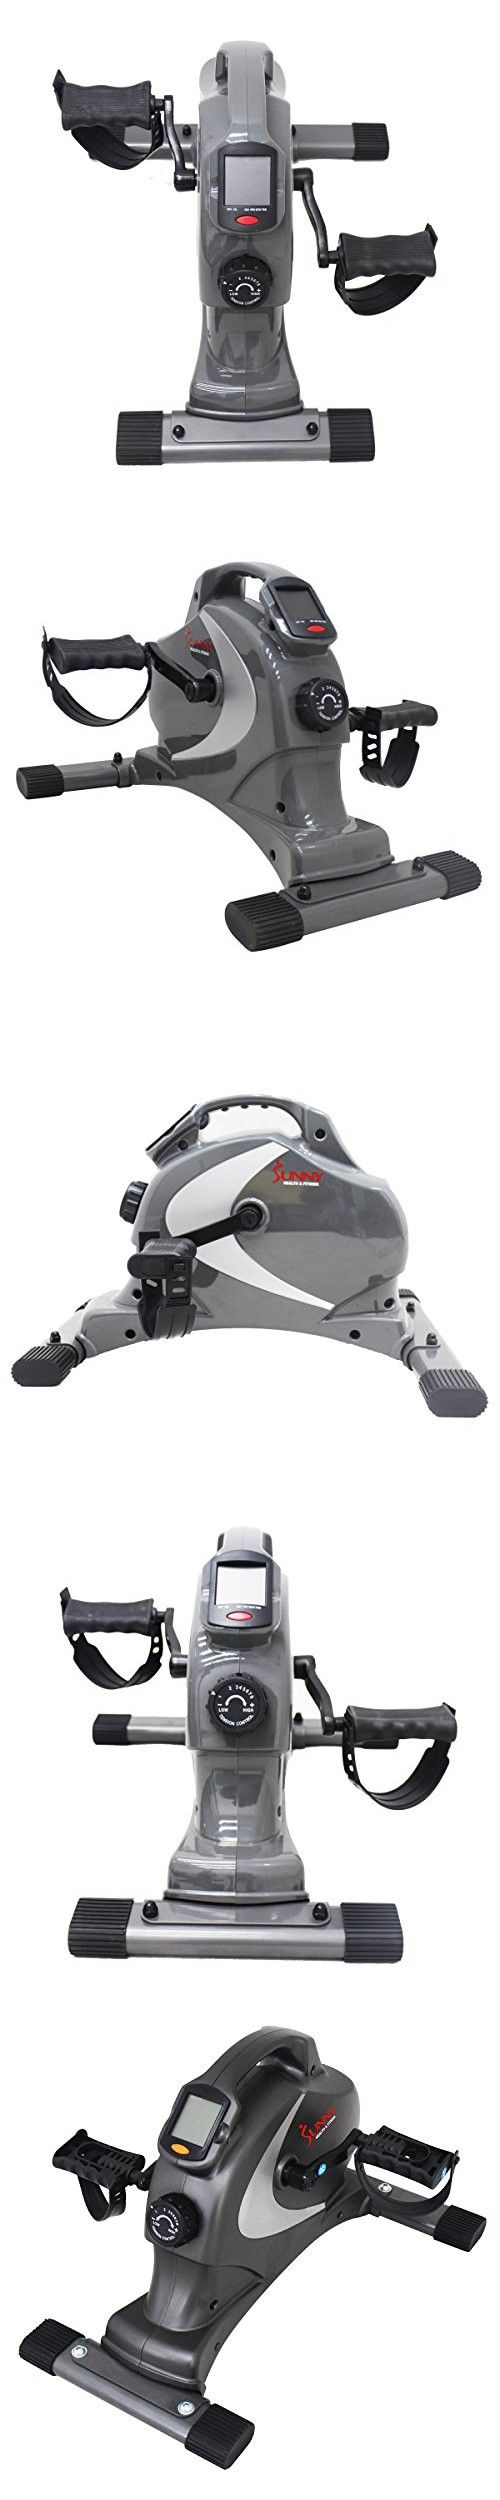 Best Seniors Stationary Home Mini Portable Cheap Exercise Bike- Perfect Sit Down Leg Arm Cardio Workout Machine- 8-Tension Settings LED Display For Time, Speed, Distance Calories- Magnetic Technology